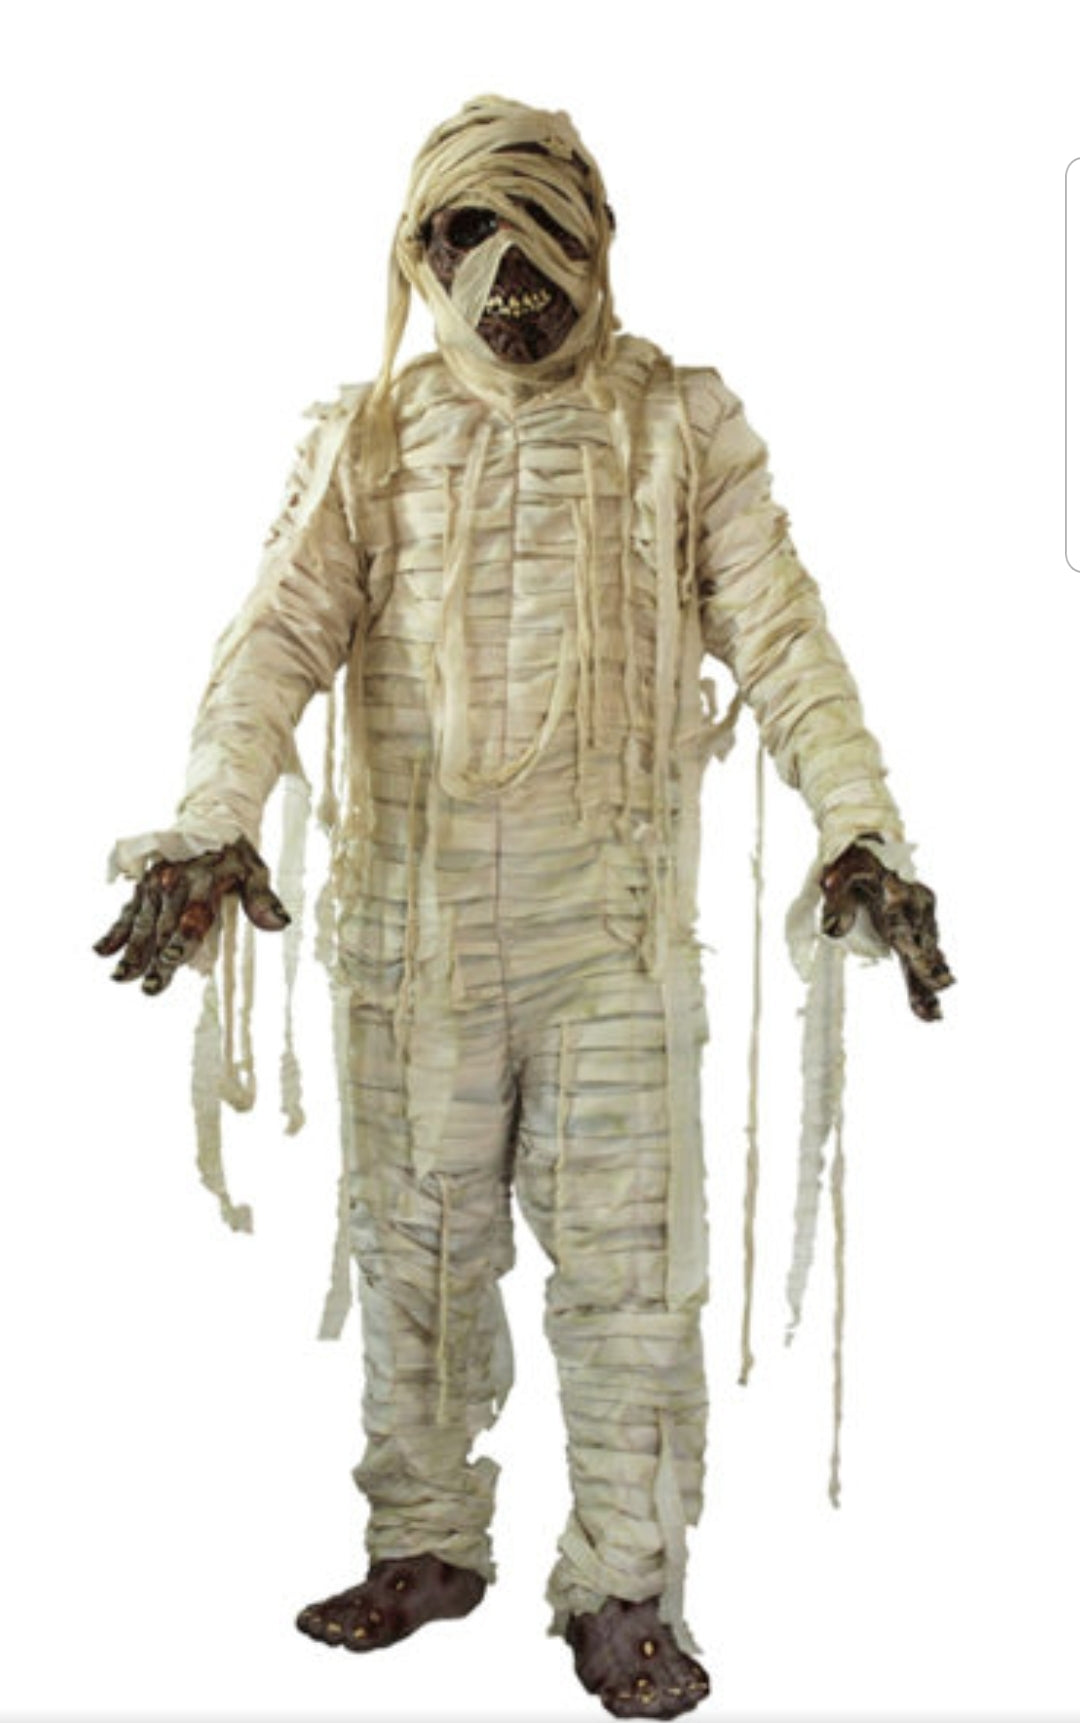 Mummified Costume